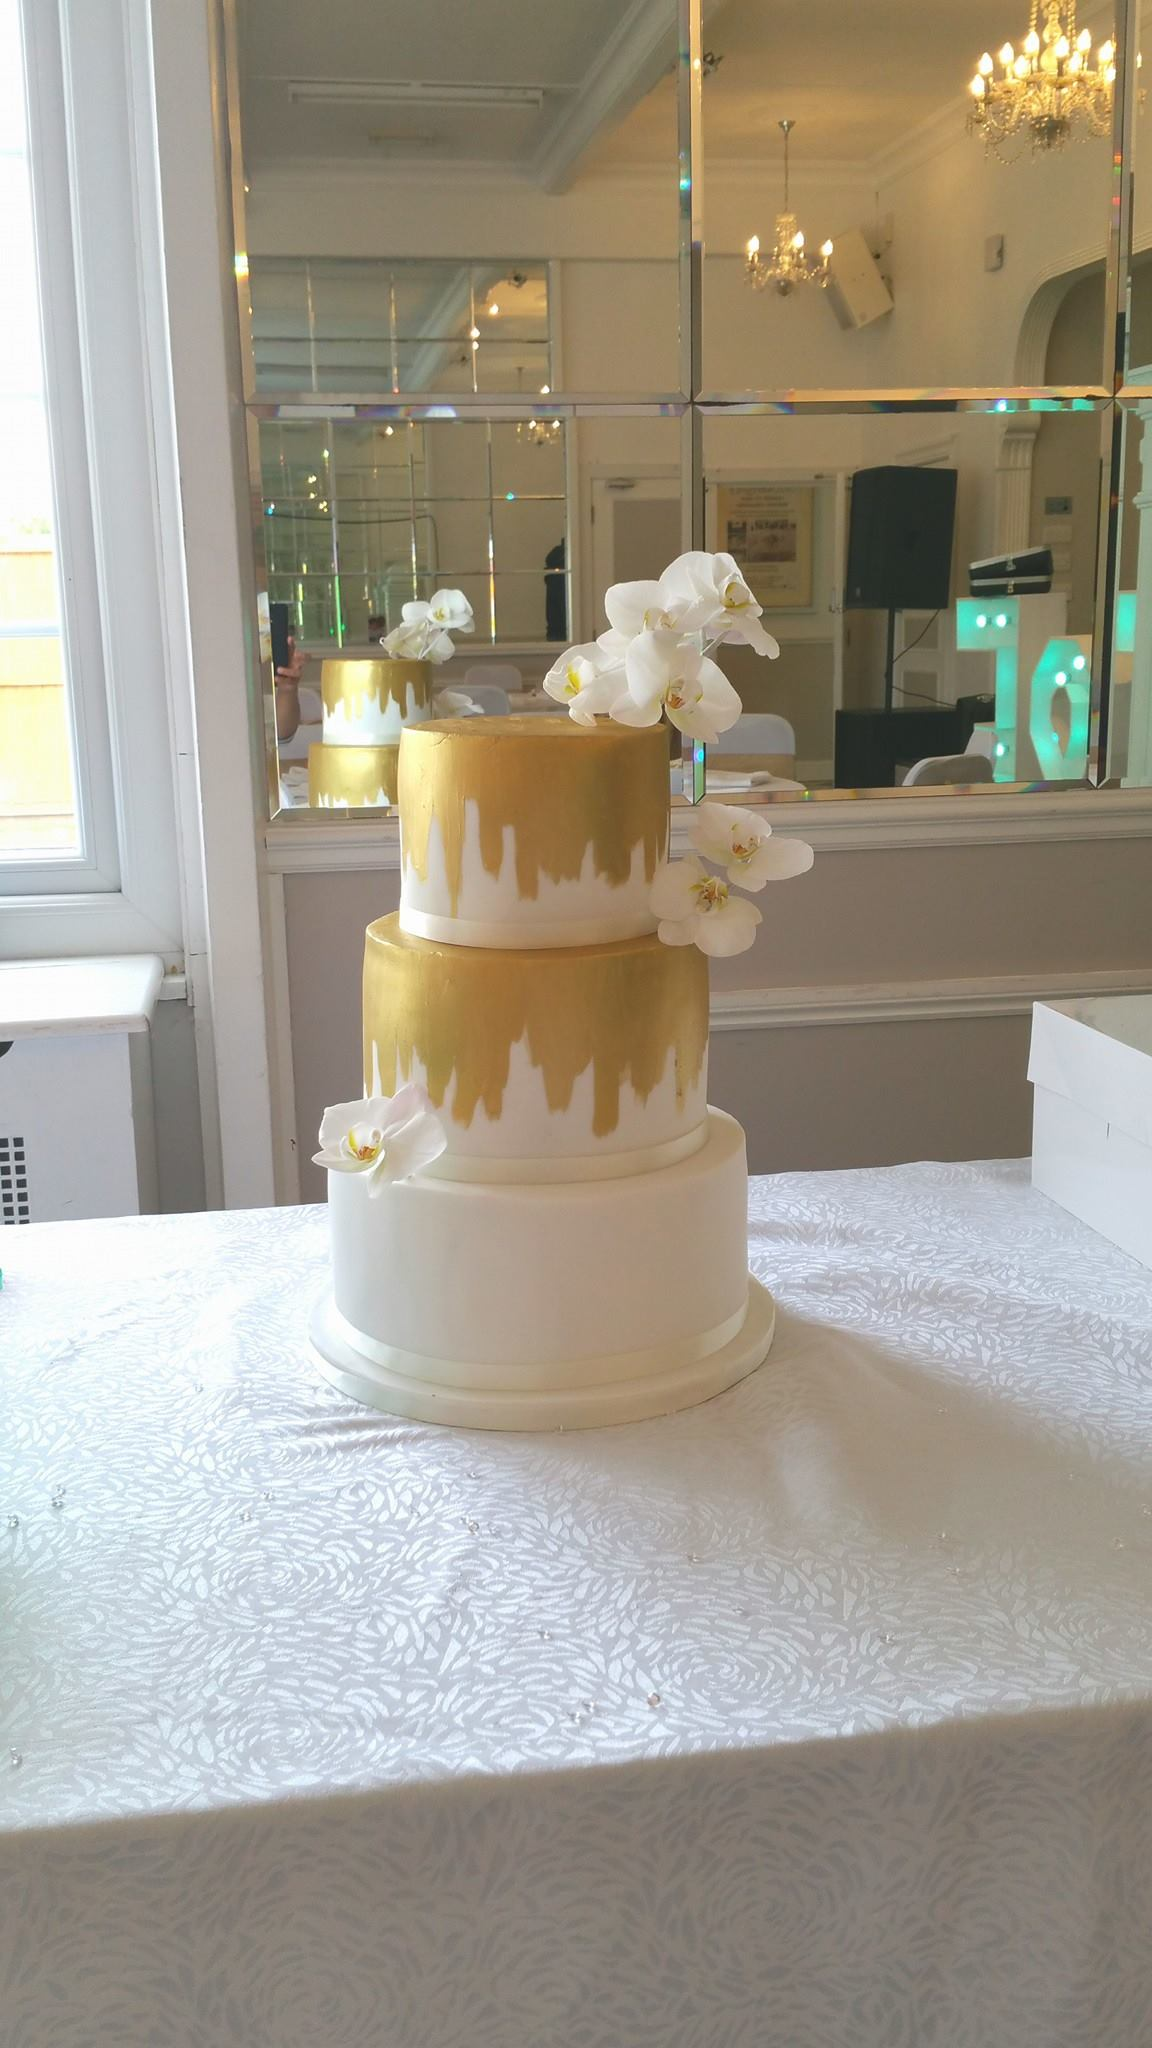 Should I let my mum/mother-in-law/friend make my wedding cake?